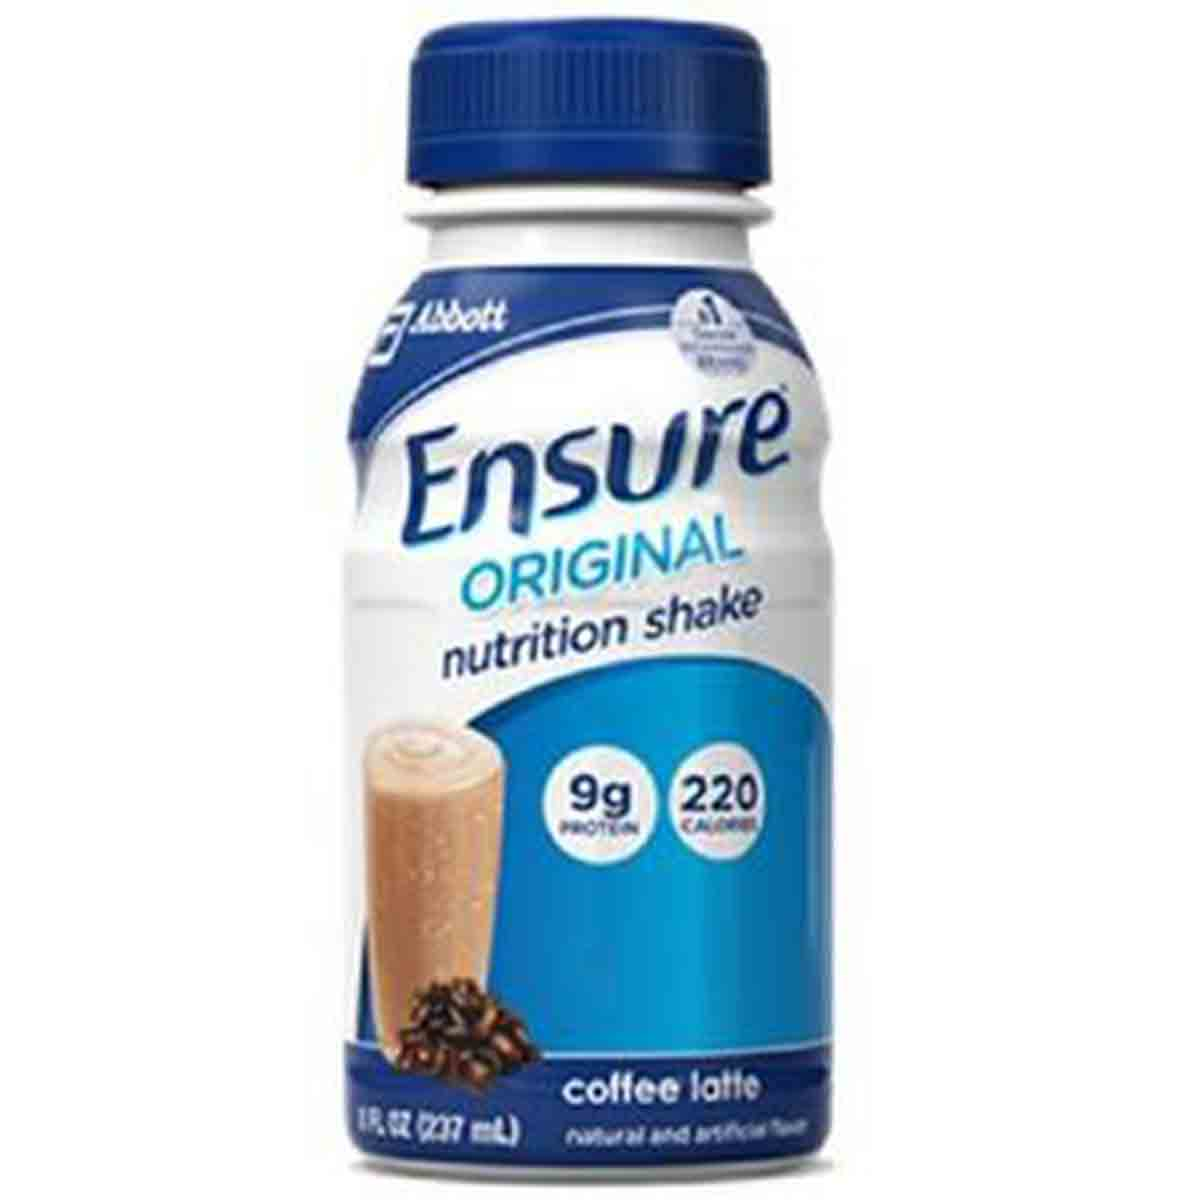 Ensure Original Shake